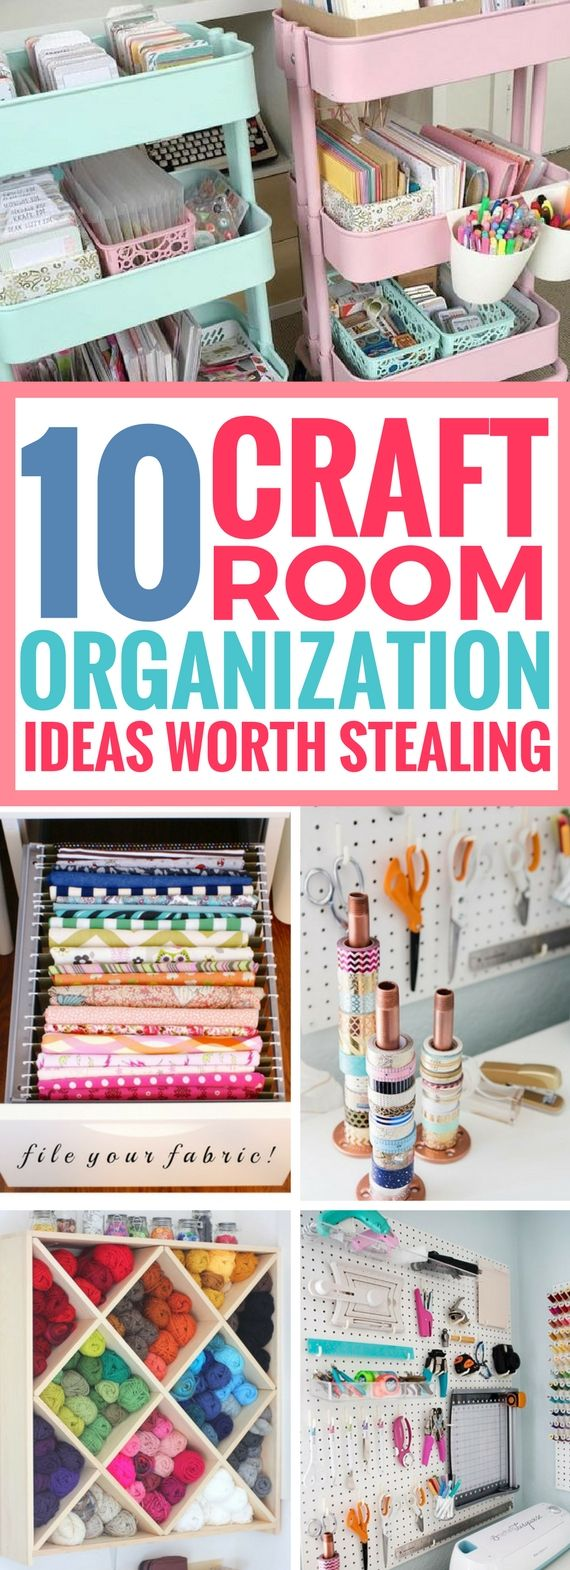 These Craft Room Organization ideas are really good. Great ways to organize craft supplies and it just takes a few, quick steps that are easy enough for anyone. Definitely saving this home hack for later